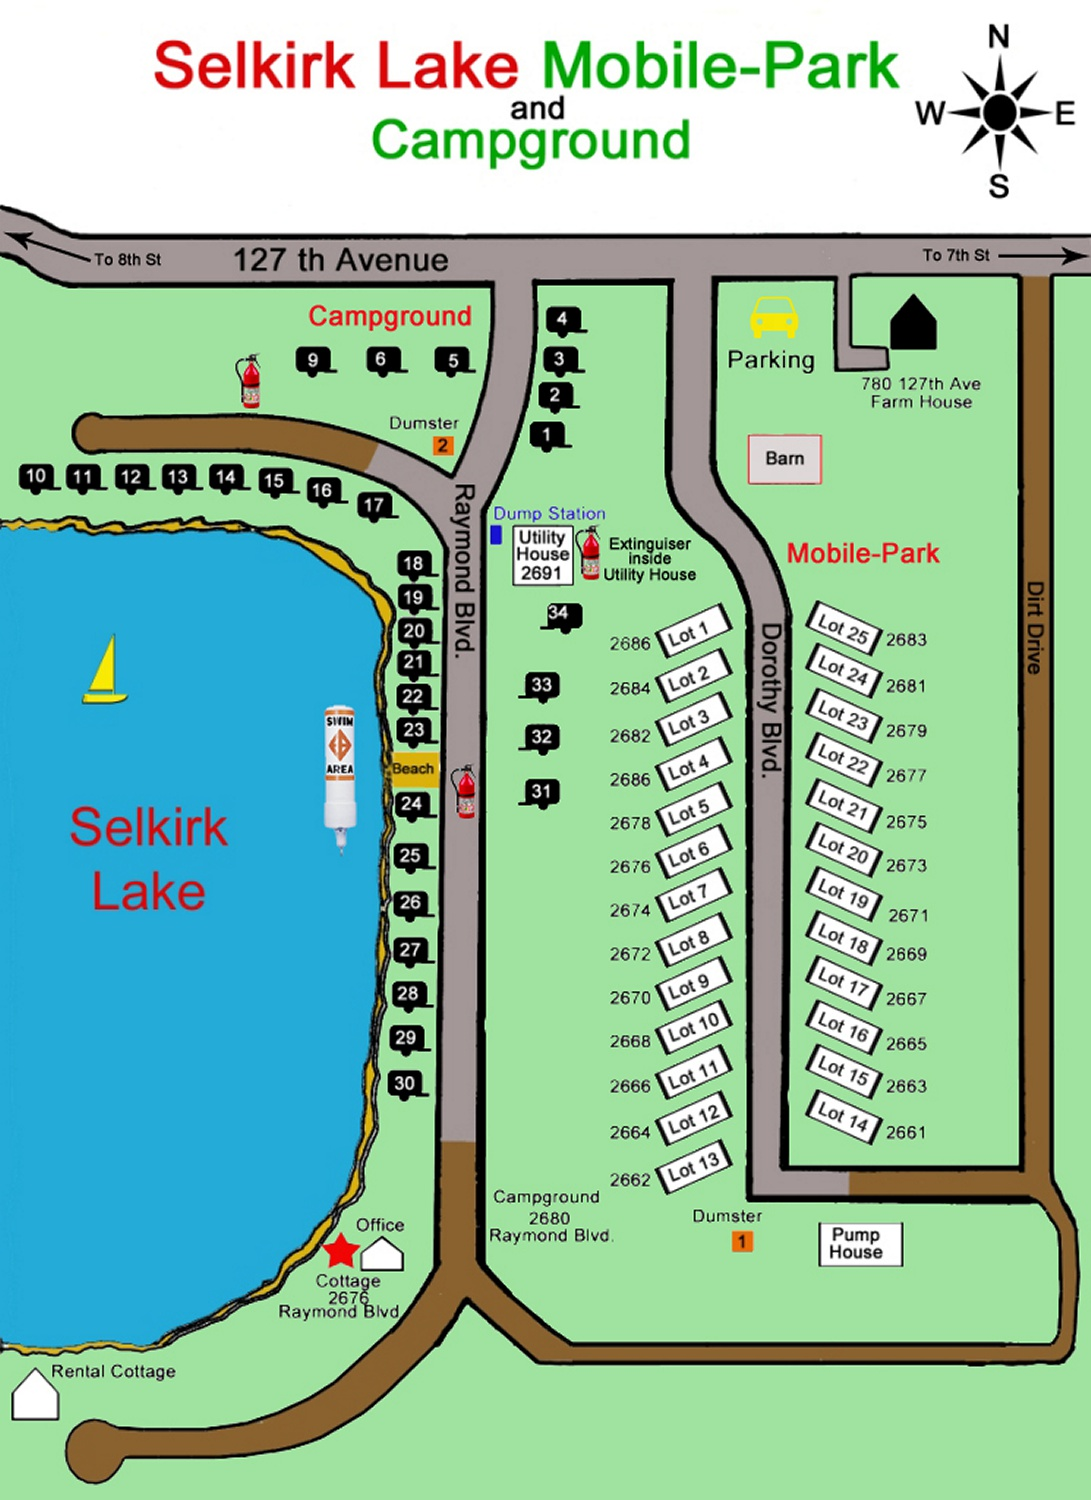 Selkirk Lake facility map.